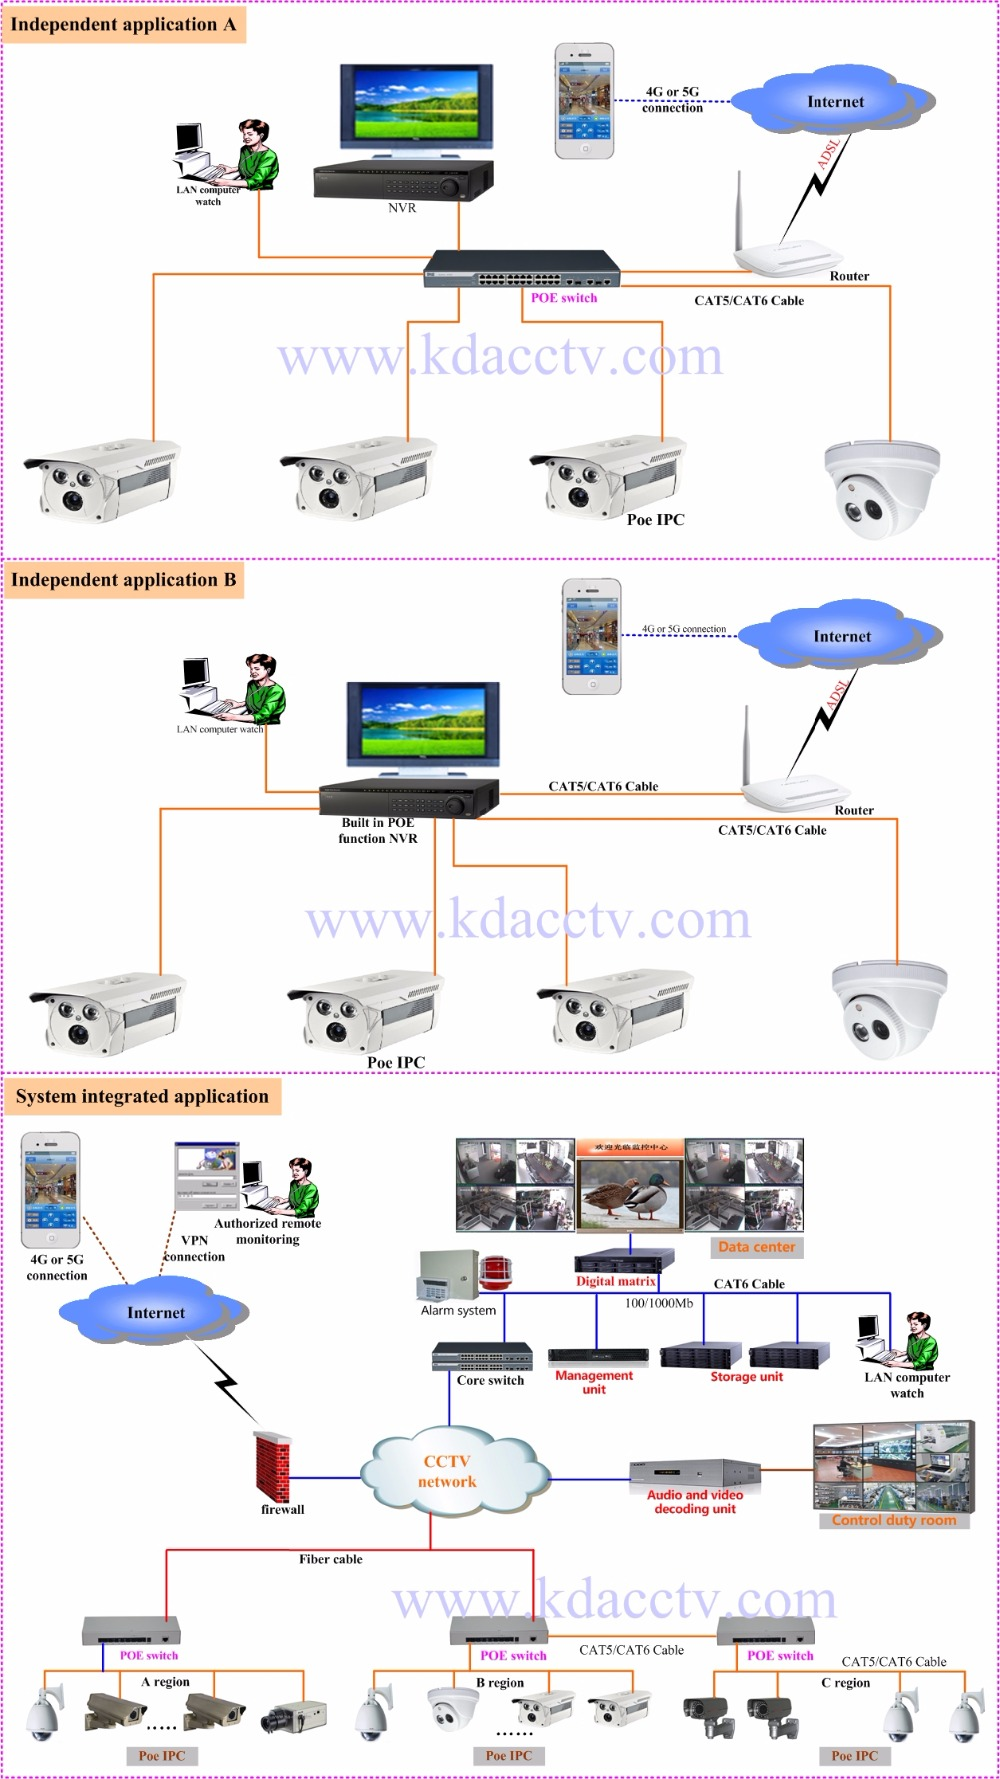 poe decoder E4100 encoder d4100 decoder poe, 4k uhd over ip cinema quality ultra-low latency visually lossless switch matrix routable encoder and decoder related products.